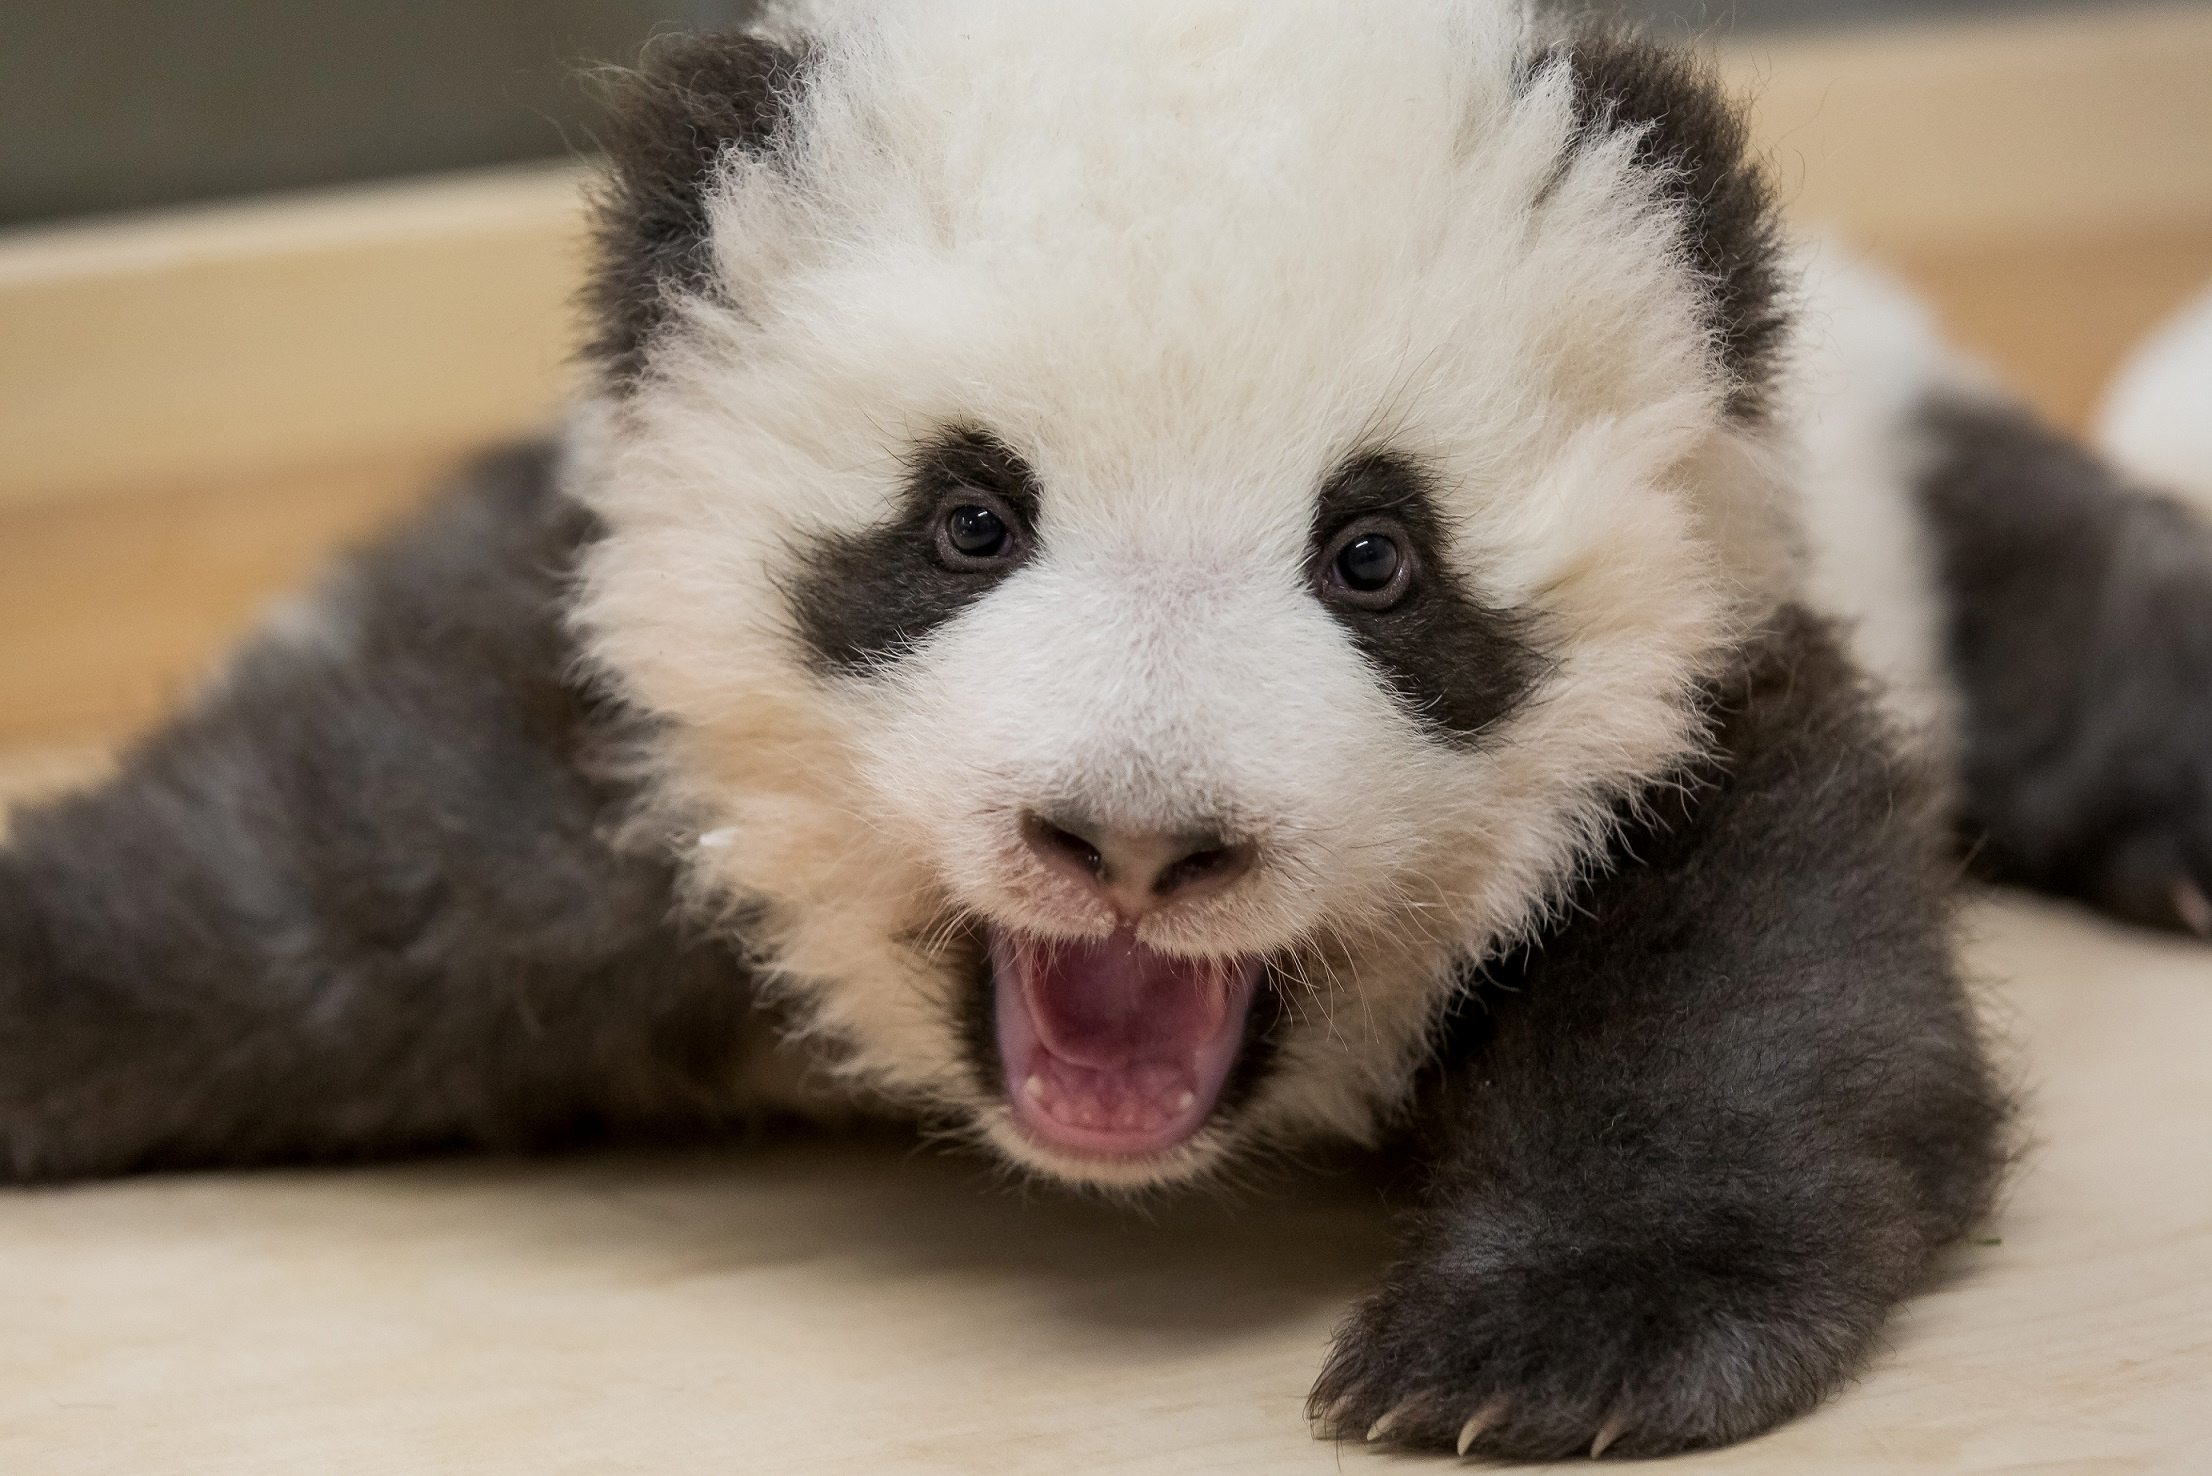 A handout photo shows one of the twin panda cubs resting in Berlin Zoo, Germany, November 27, 2019. Picture taken November 27, 2019. Berlin Zoo/Handout via REUTERS ATTENTION EDITORS - THIS IMAGE WAS PROVIDED BY A THIRD PARTY. NO RESALES. NO ARCHIVES. MANDATORY CREDIT.